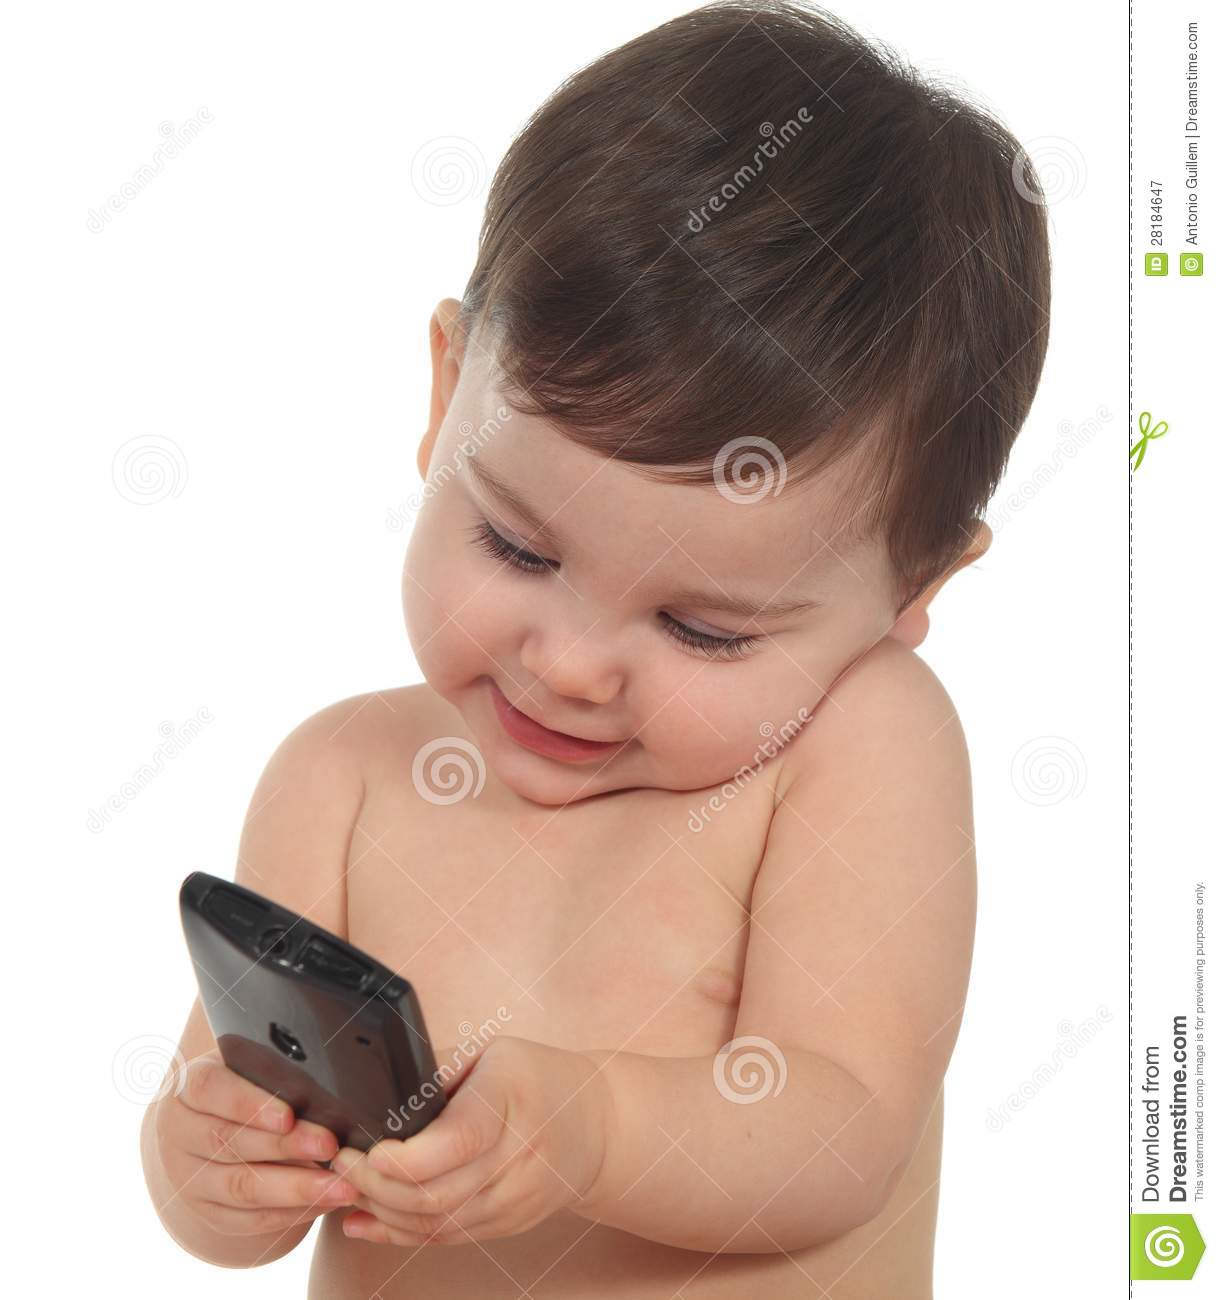 Baby Happy And Concentrated In A Mobile Phone Royalty Free ...